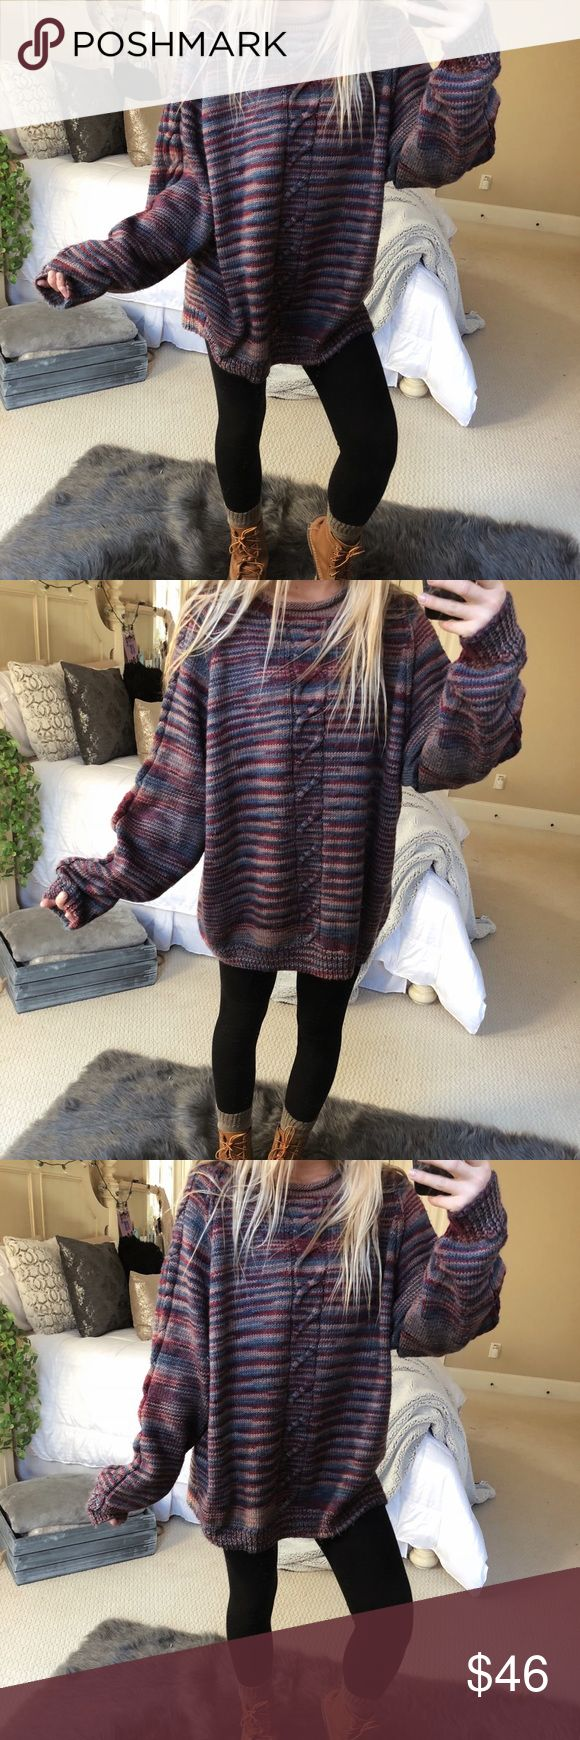 cozy multicolor knit sweater gorgeous multicolor oversized chunky knit sweater. so so plush and cozy! fits a size medium or large ☕️☕️🌿 — * all offers 100% welcomed + encouraged * bundle for a private discount of at least 20% off  * orders guaranteed to ship within 1-2 days unless stated otherwise * ask me any questions if you ever have any! xo Sweaters